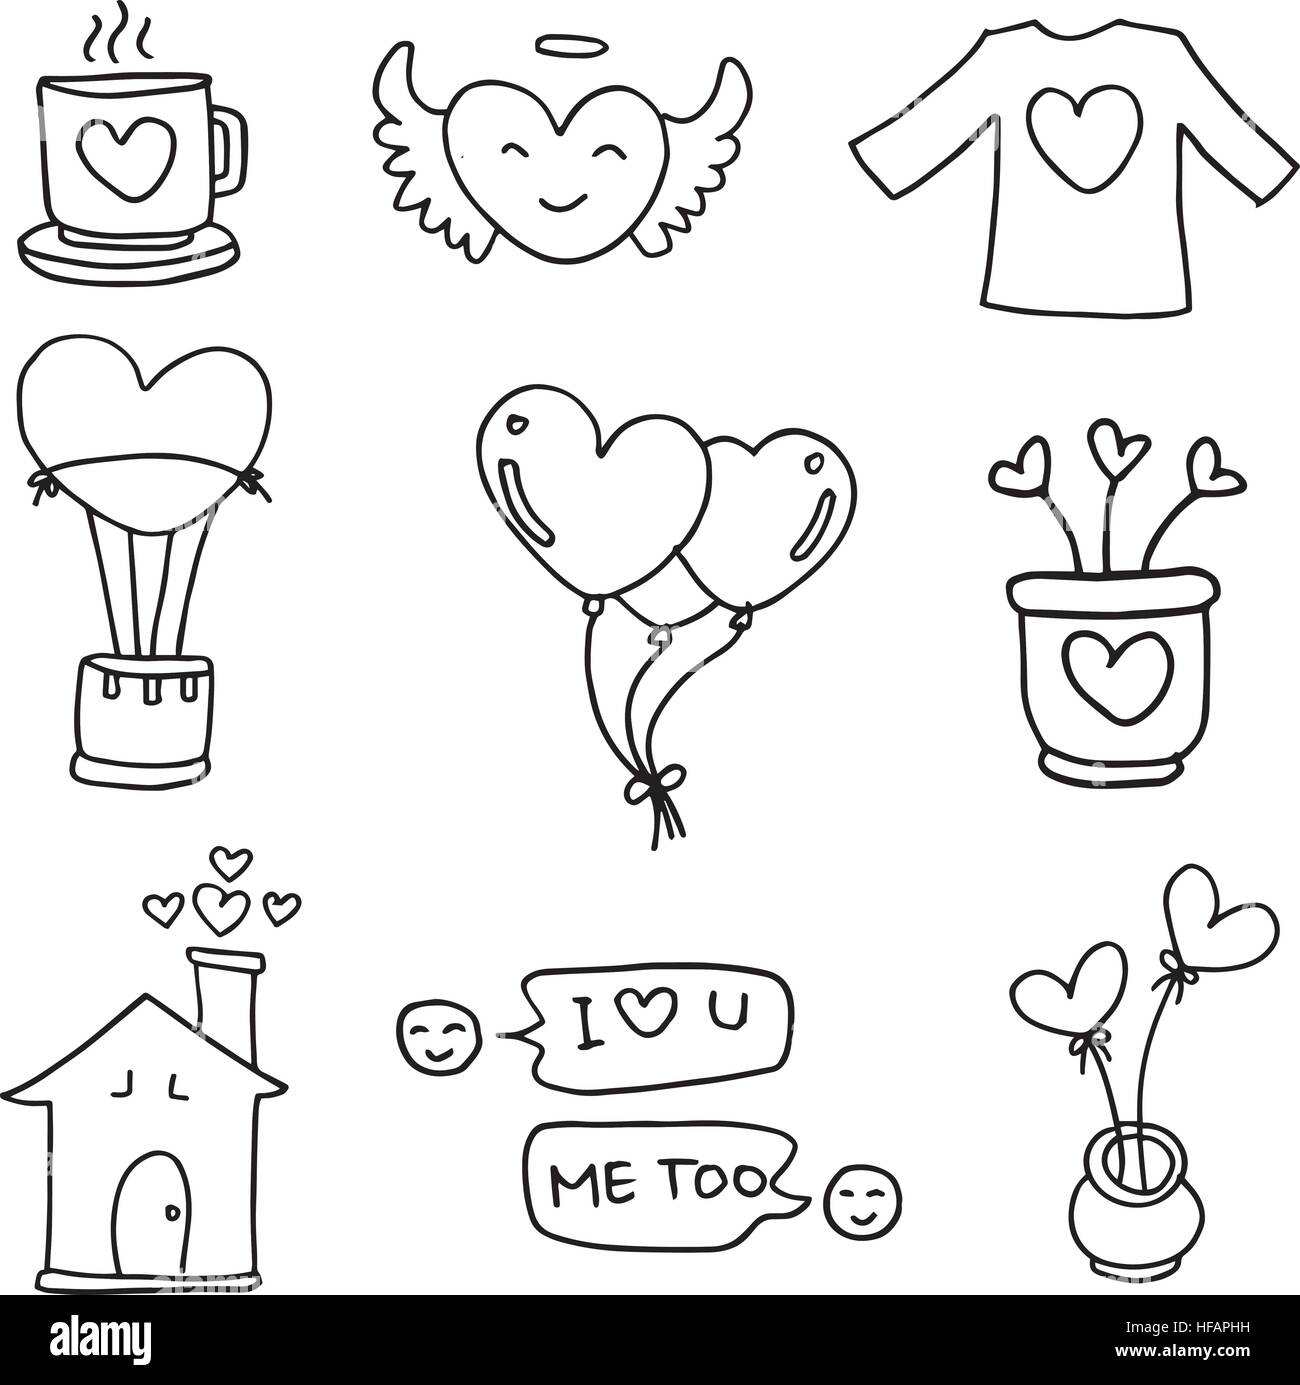 Illustration of hand draw love doodles stock vector art for Love doodles to draw